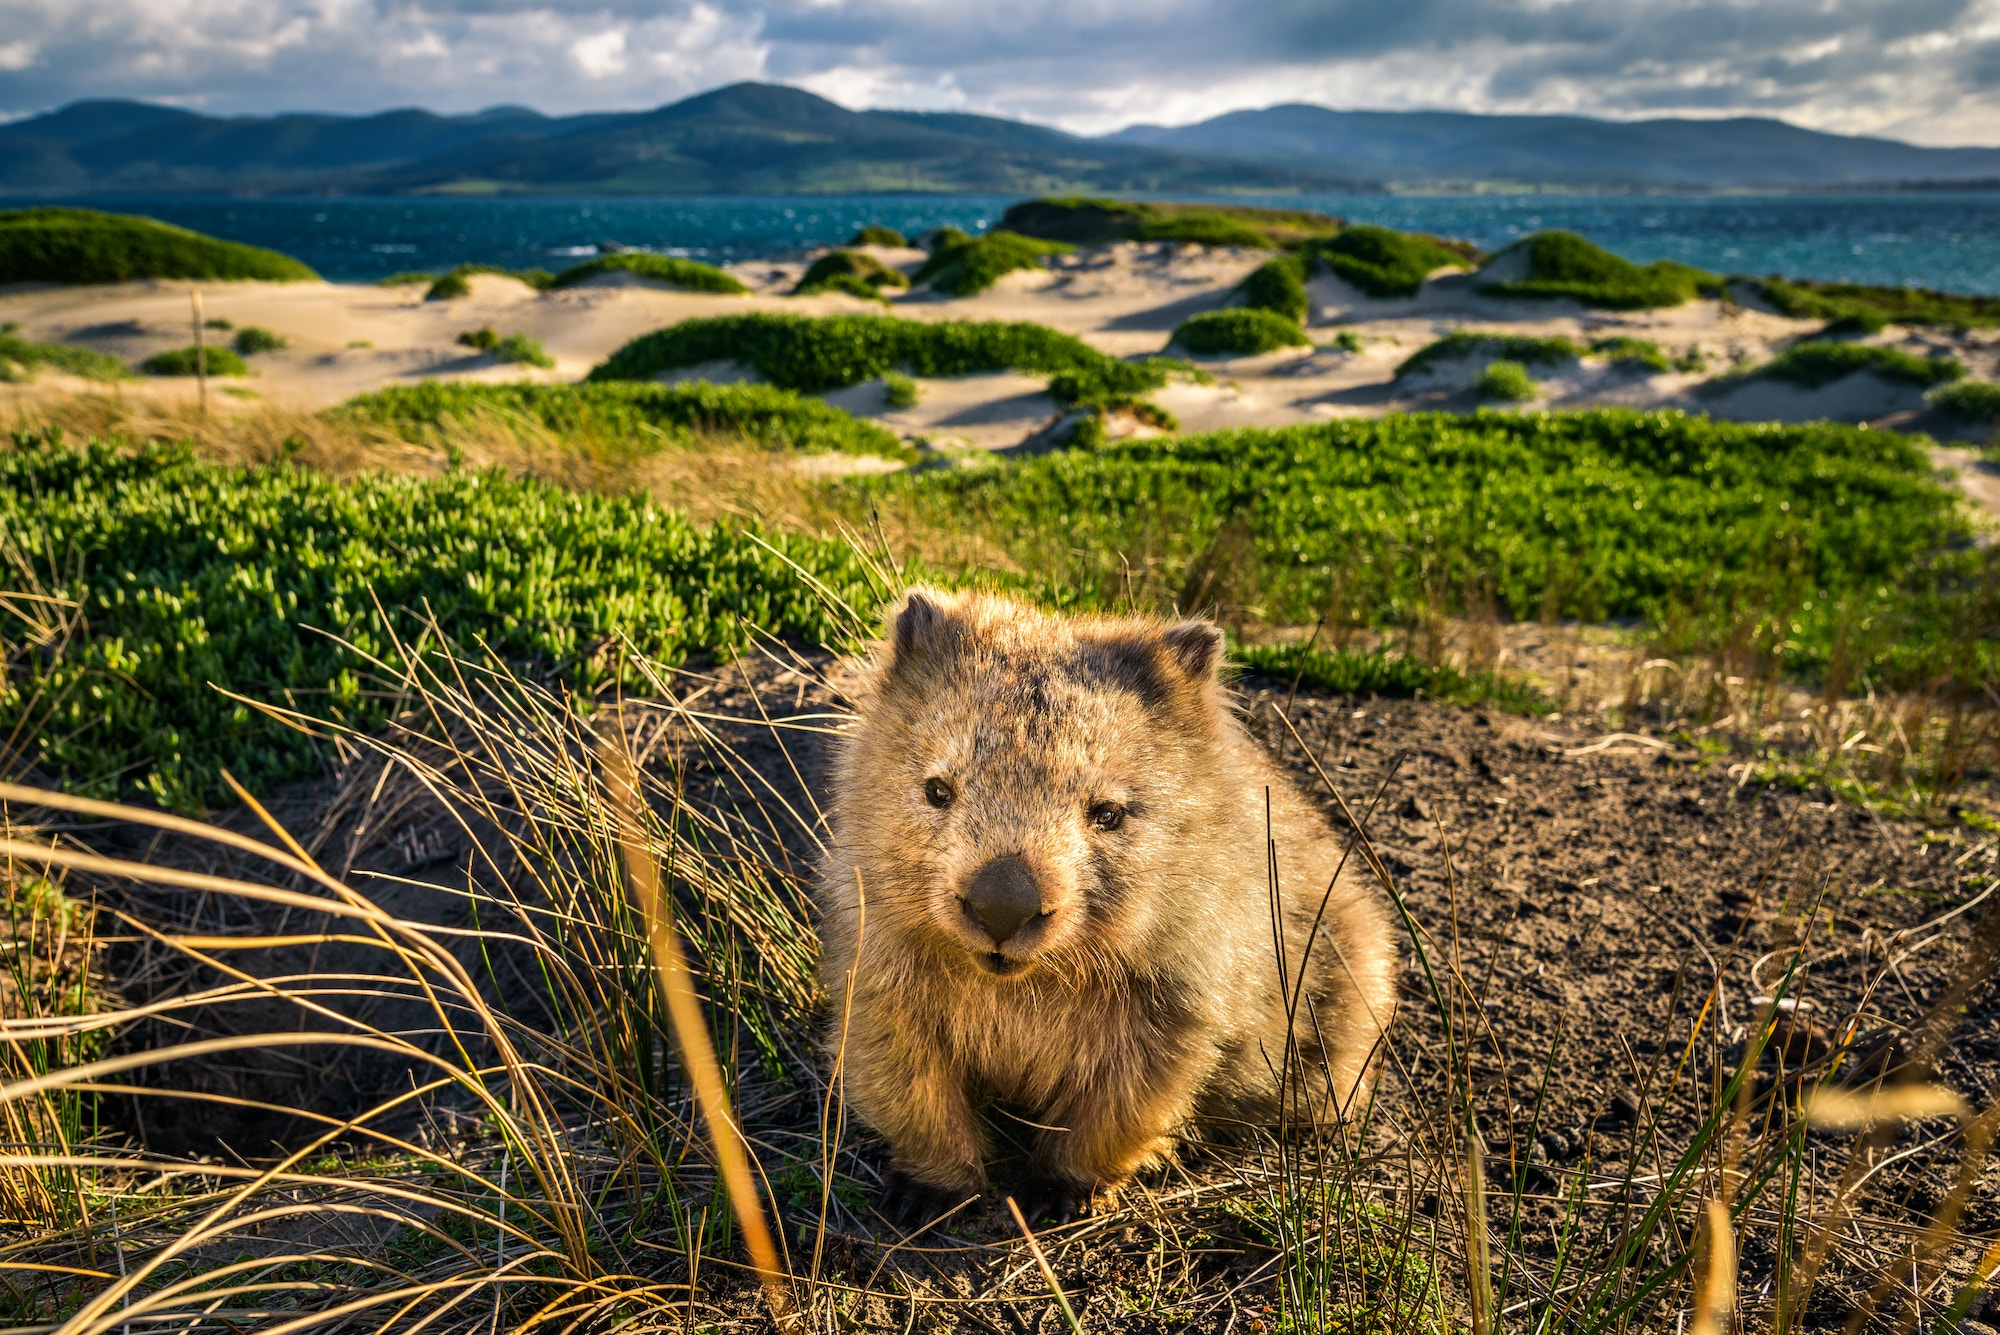 Wombat at Lesueur Point. Maria Island, Tasmania